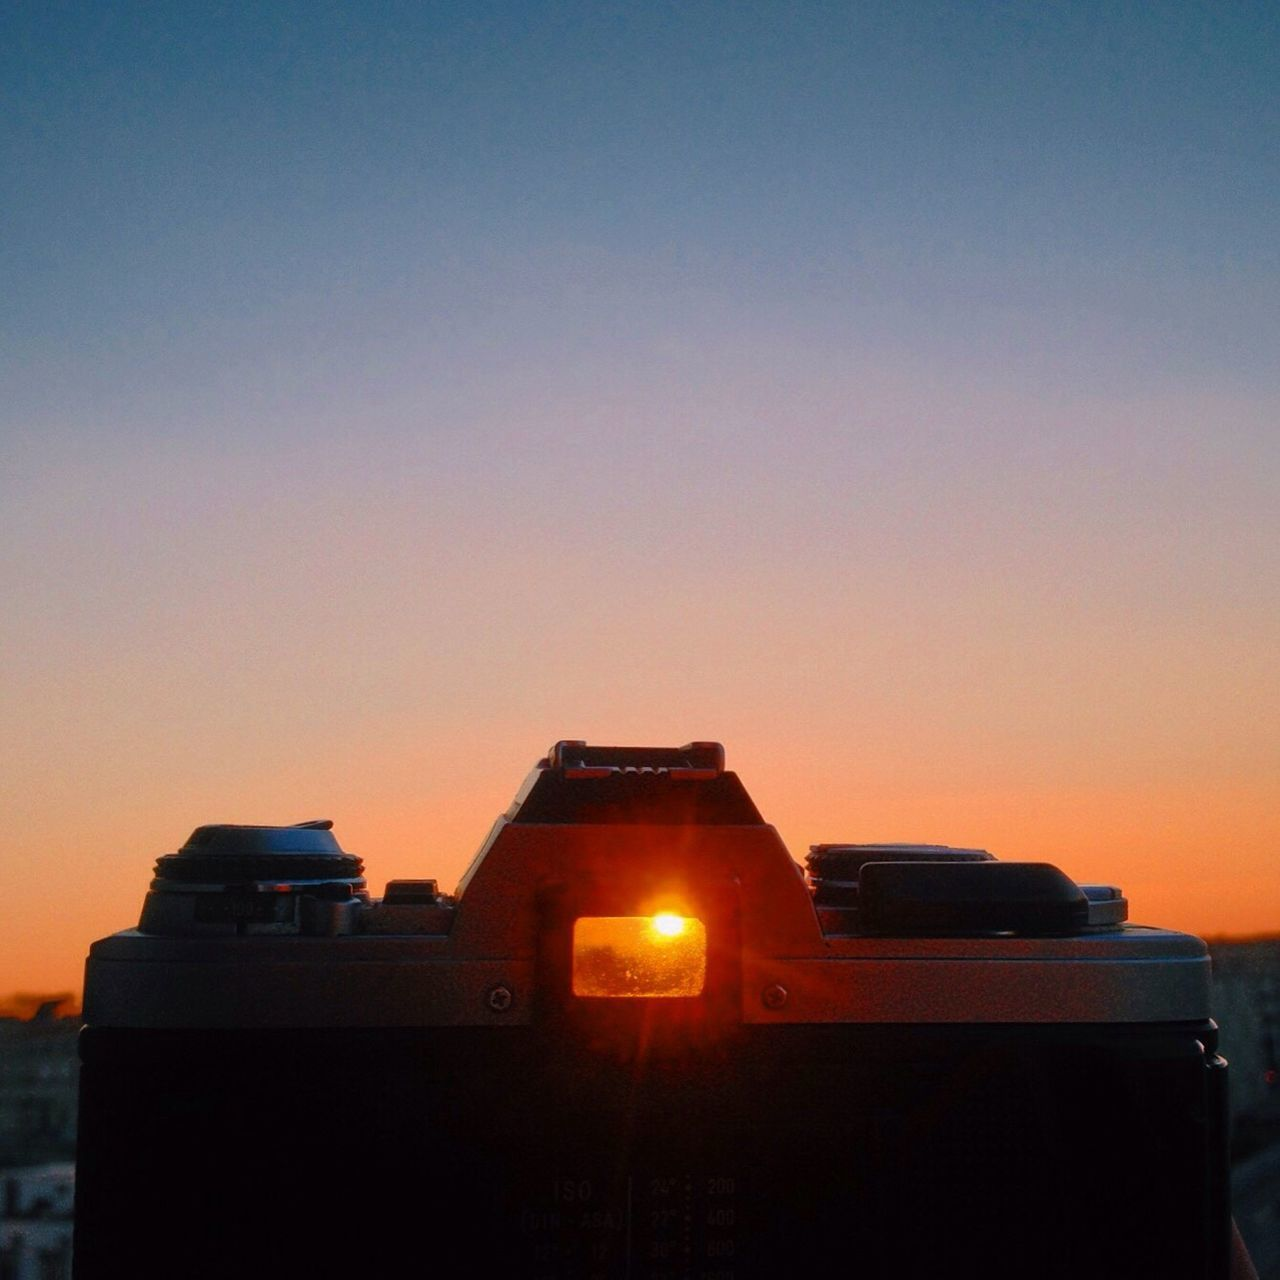 sunset, orange color, no people, clear sky, illuminated, camera - photographic equipment, outdoors, architecture, sky, built structure, building exterior, technology, photography themes, close-up, digital single-lens reflex camera, day